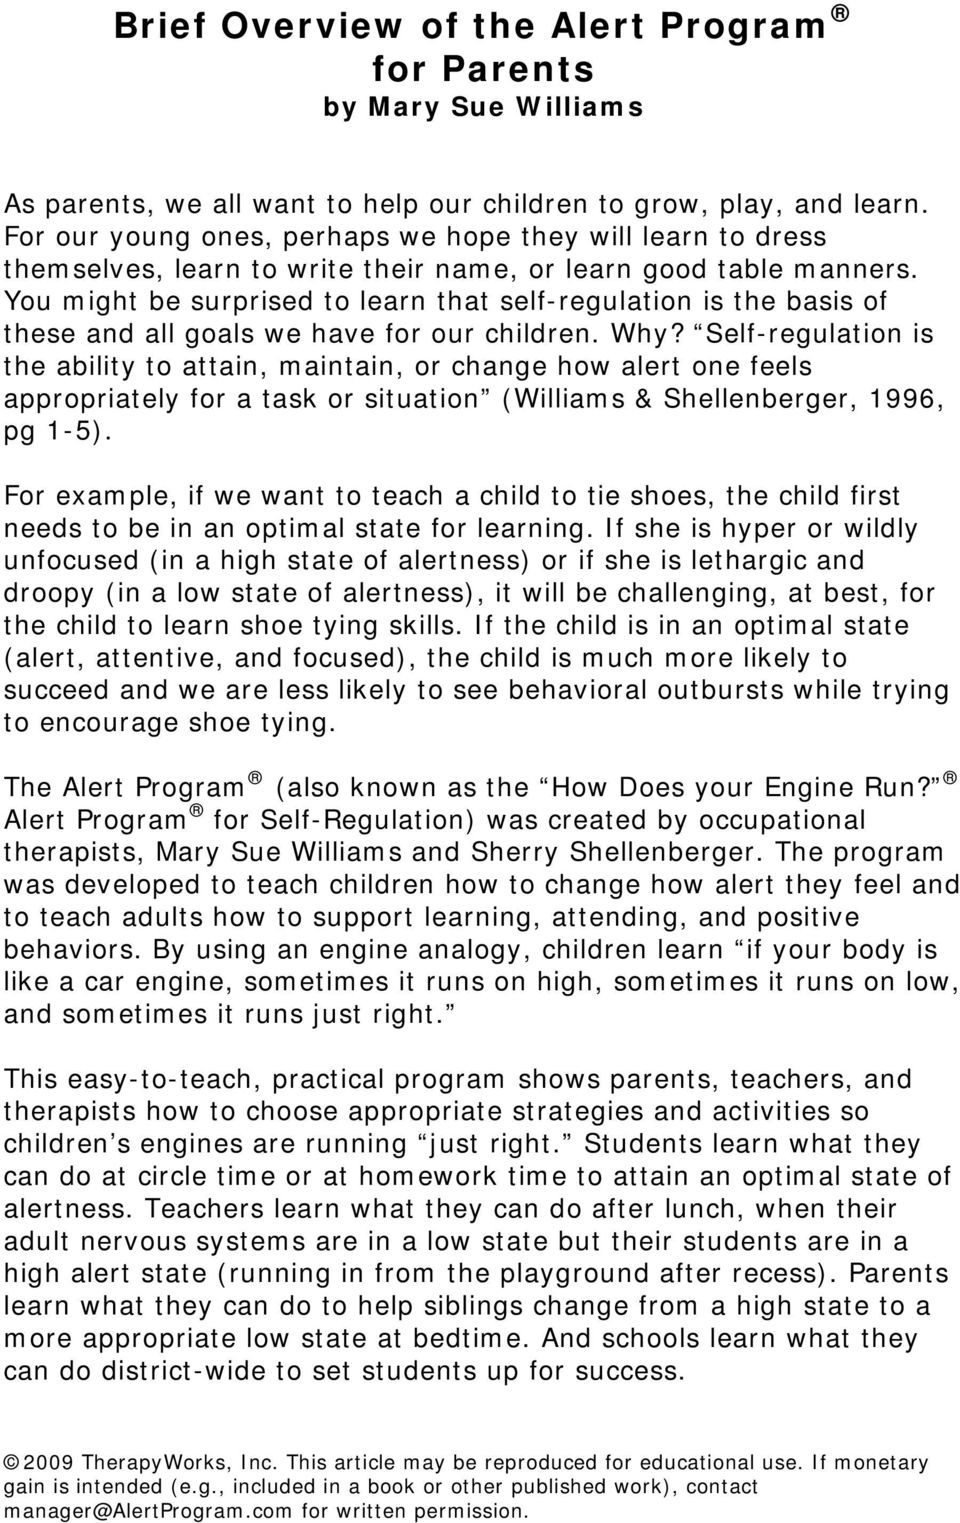 You might be surprised to learn that self-regulation is the basis of these and all goals we have for our children. Why?